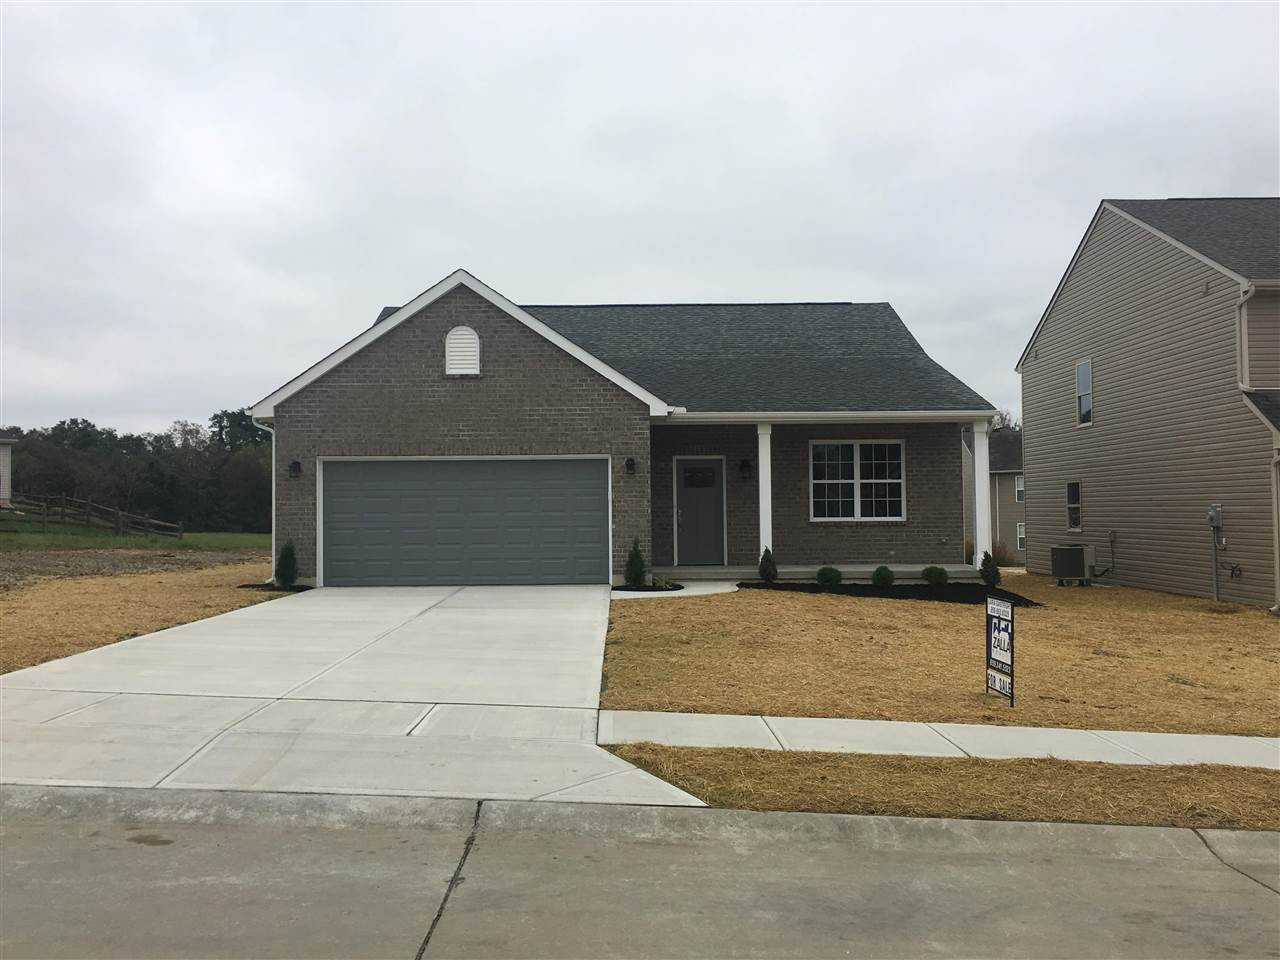 Photo 1 for 108 Keeneland Dr Williamstown, KY 41097